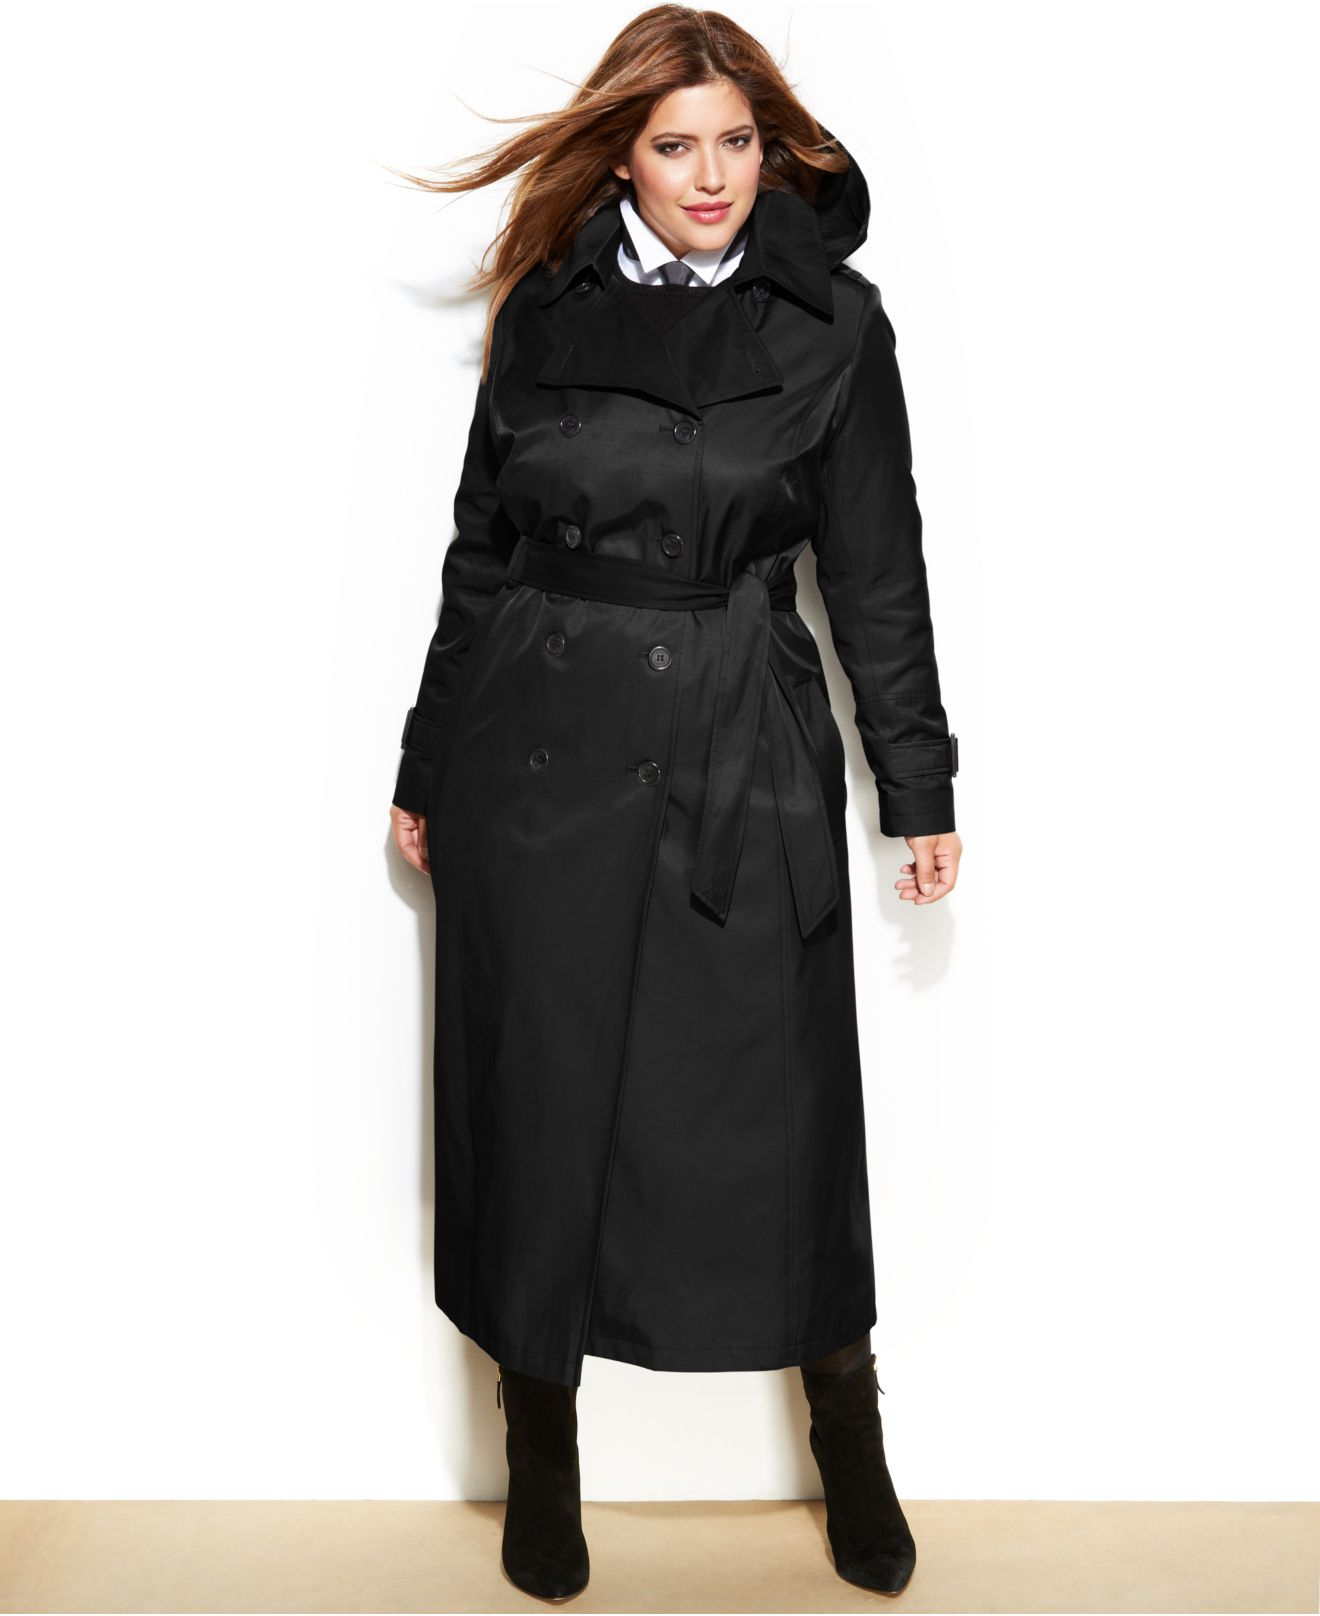 cc29a484448 DKNY Plus Size Maxi Trench Coat in Black - Lyst